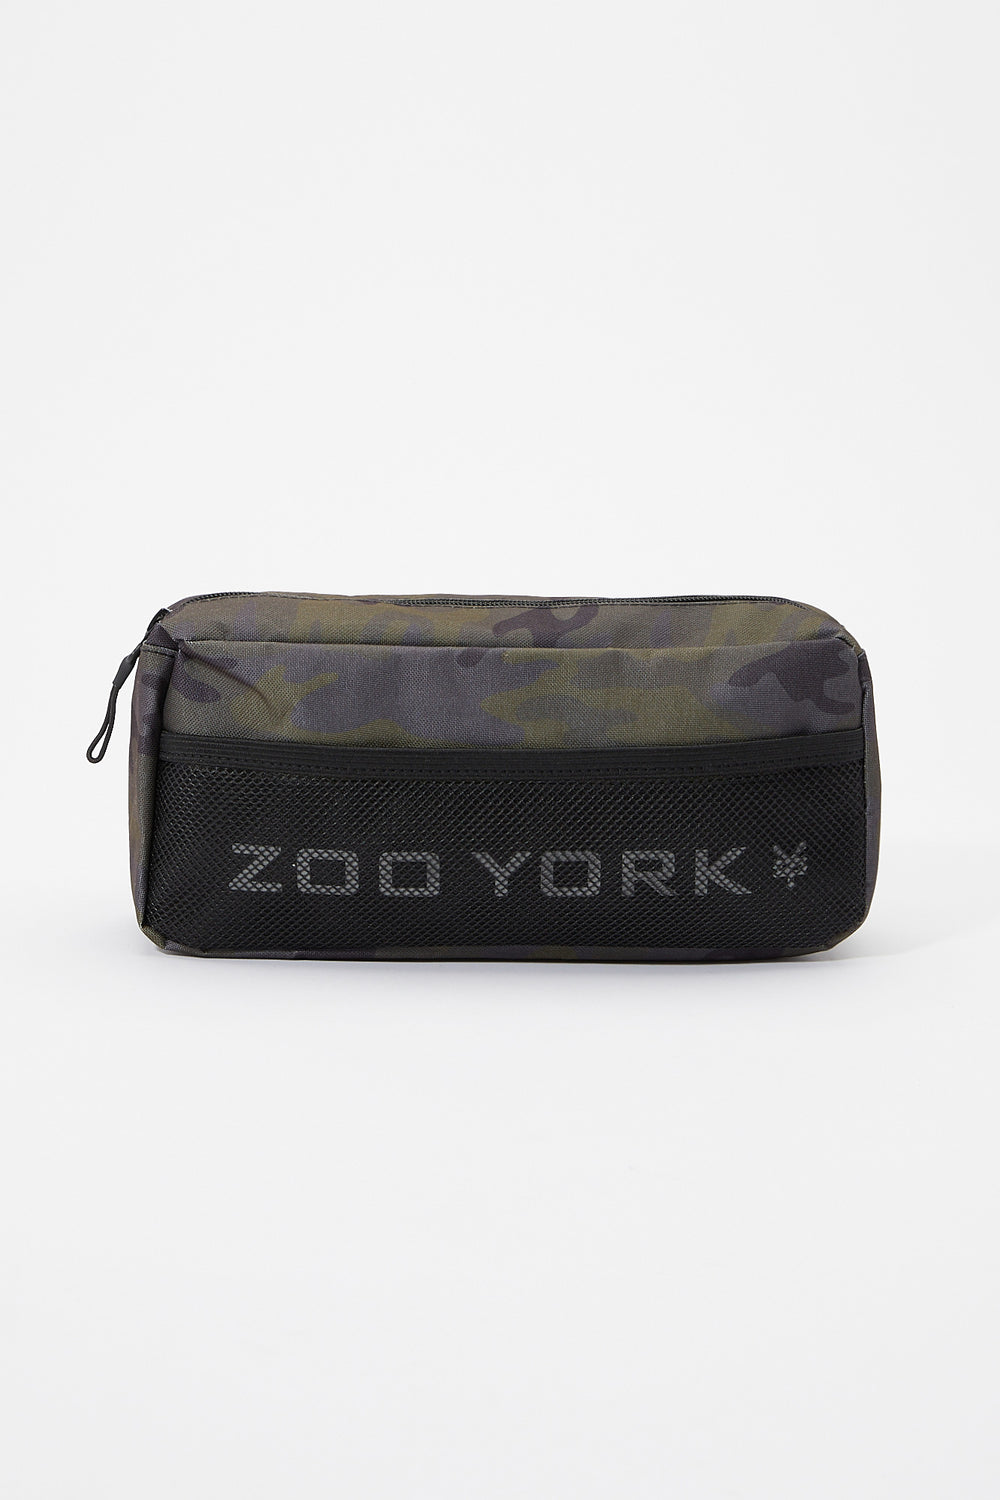 Zoo York Camo with Mesh Fanny Pack Camouflage